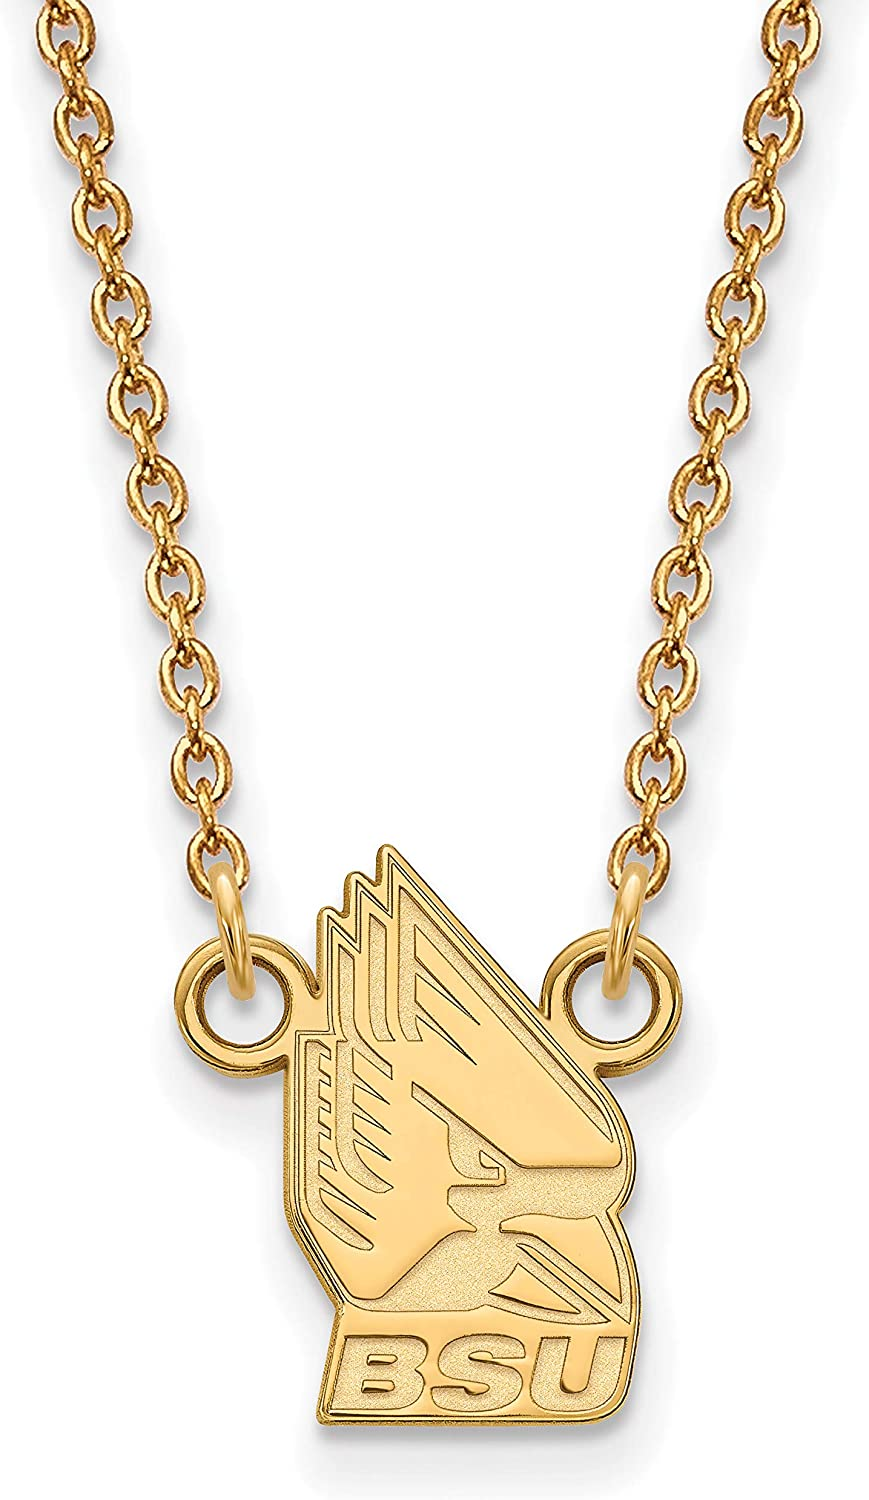 10k Yellow Gold Ball State University Cardinals Charlie Mascot Pendant Necklace 12x9mm 18 Inches